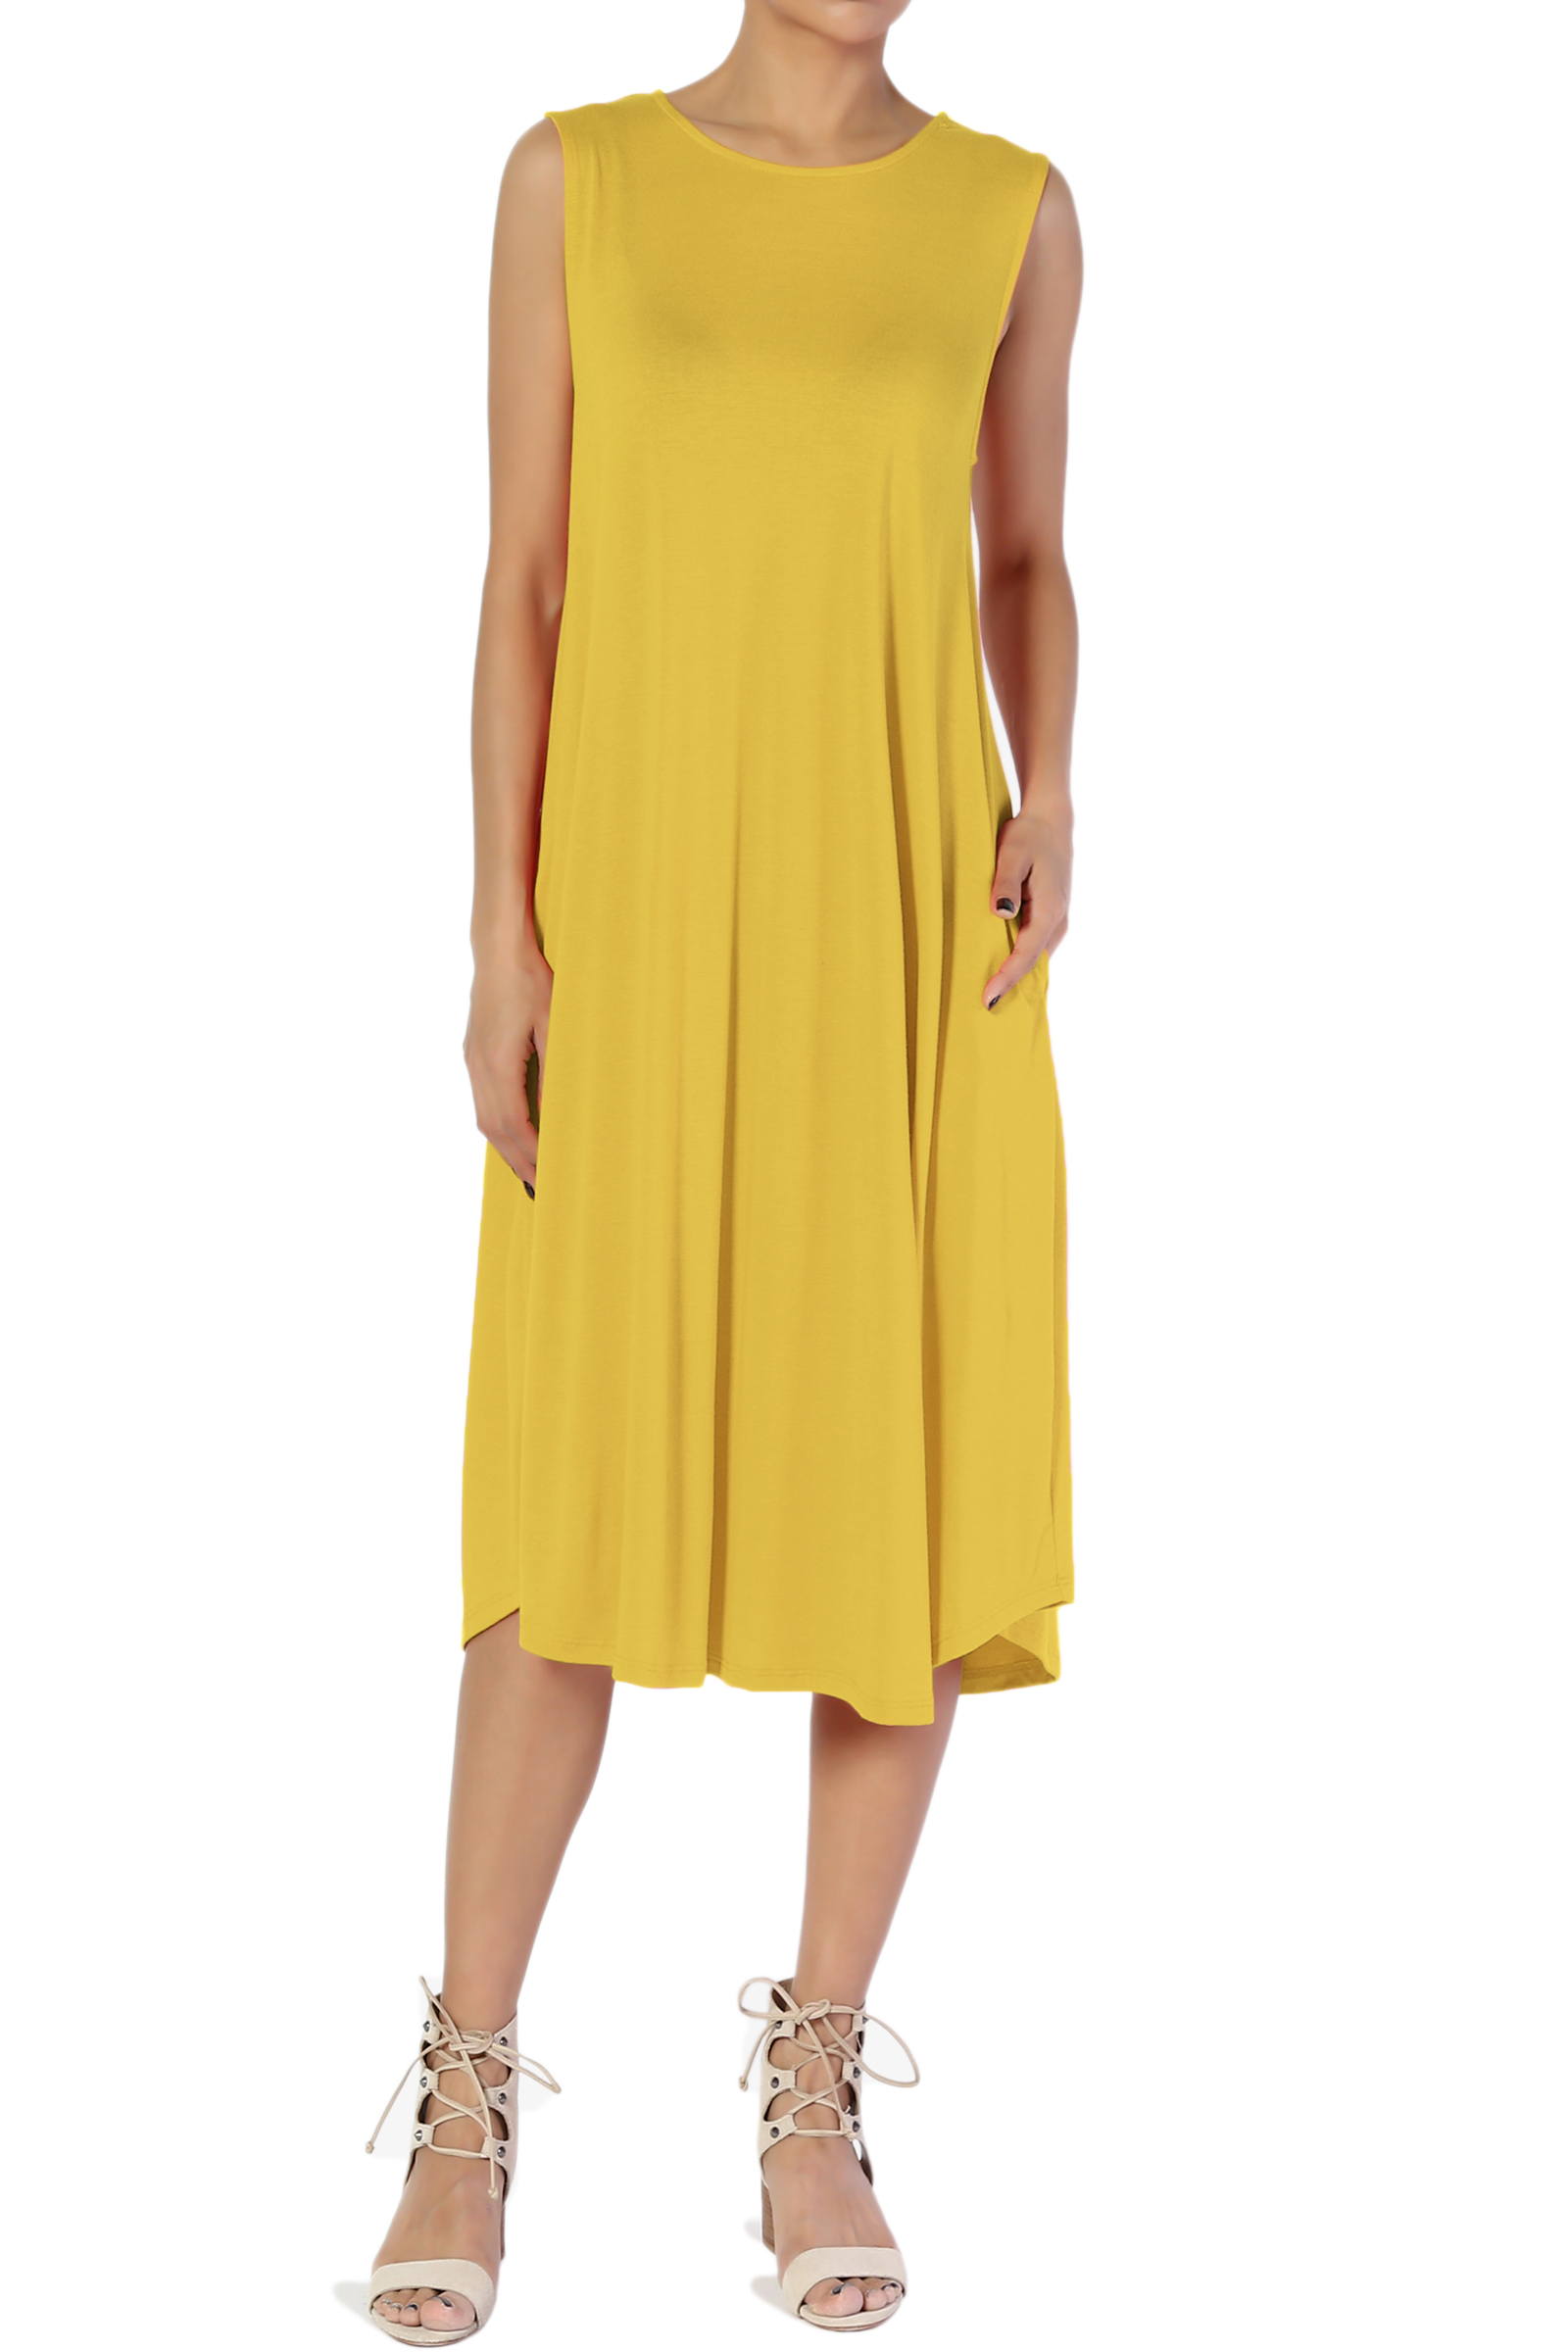 TheMogan Women's S~3X Sleeveless Fit & Flare A-line Draped Jersey Midi Long Dress